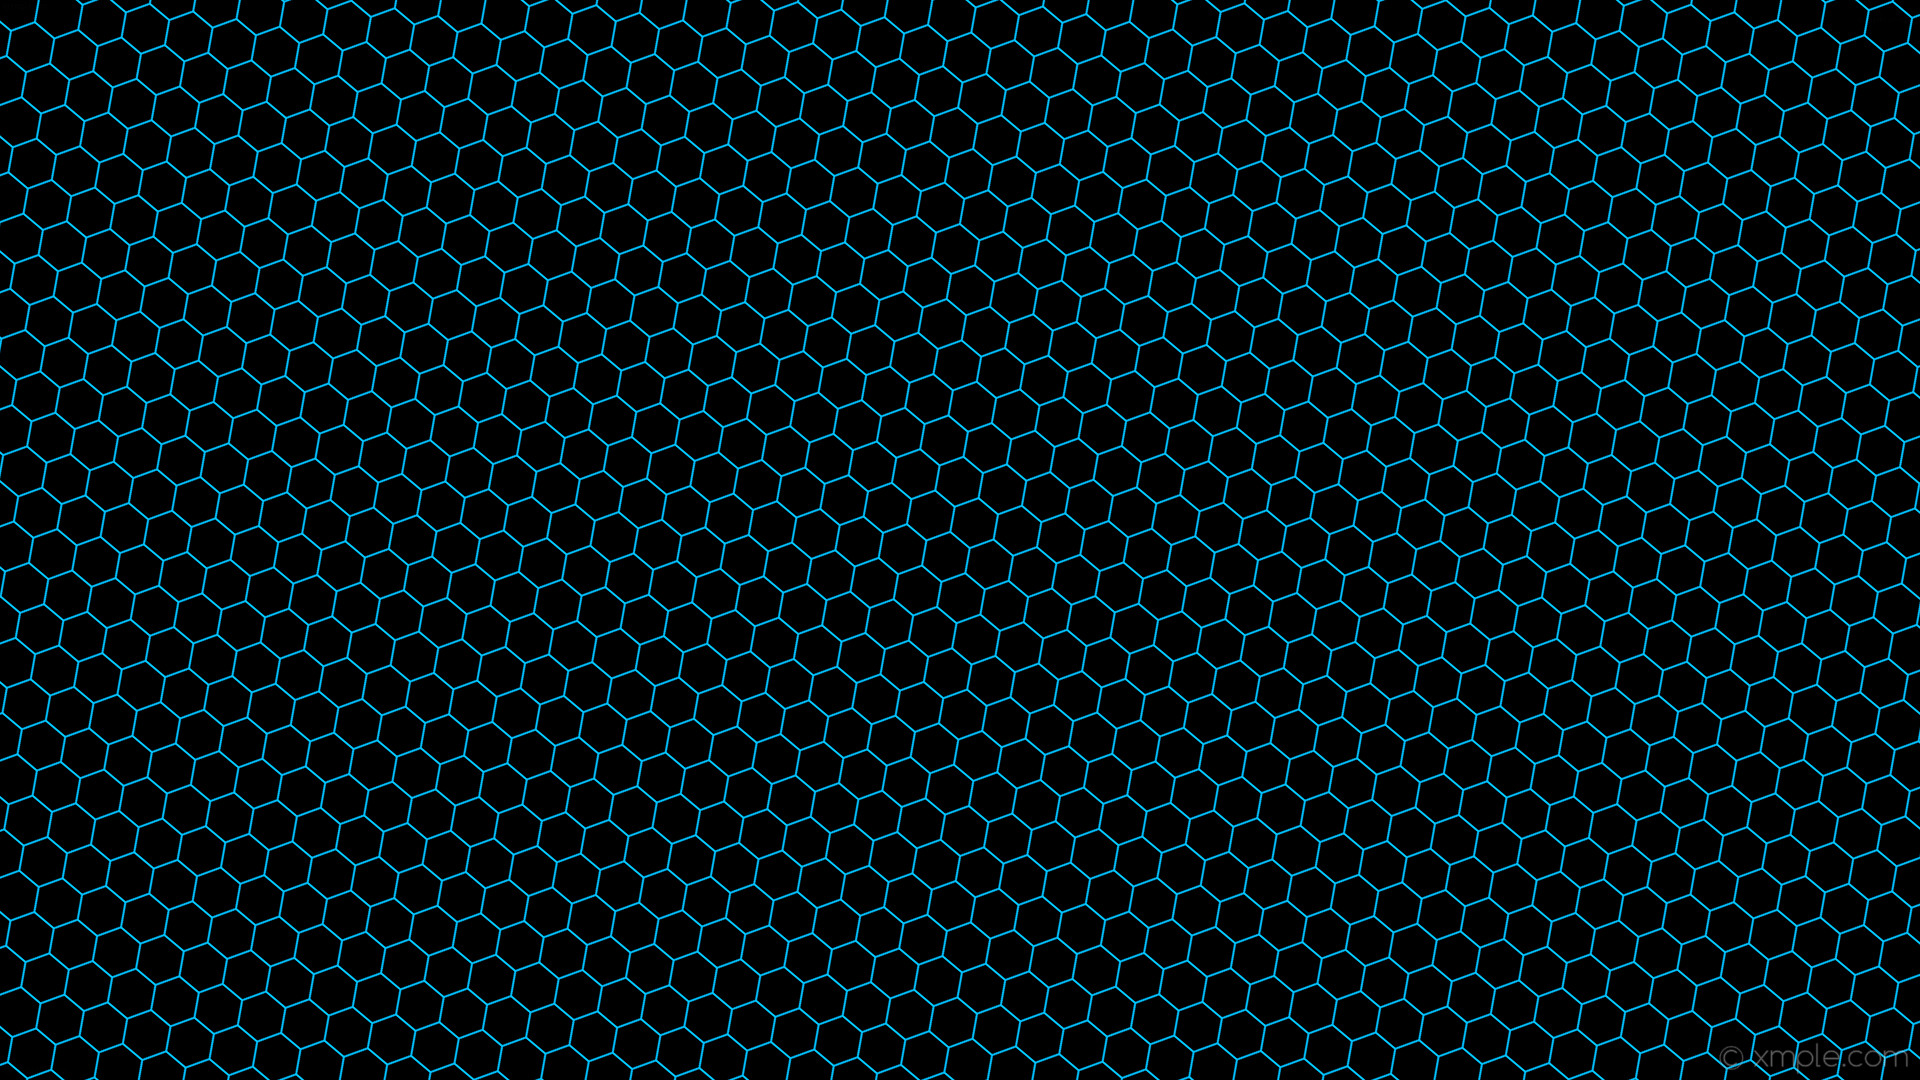 Res: 1920x1080, wallpaper honeycomb blue beehive hexagon black deep sky blue #000000  #00bfff diagonal 50°